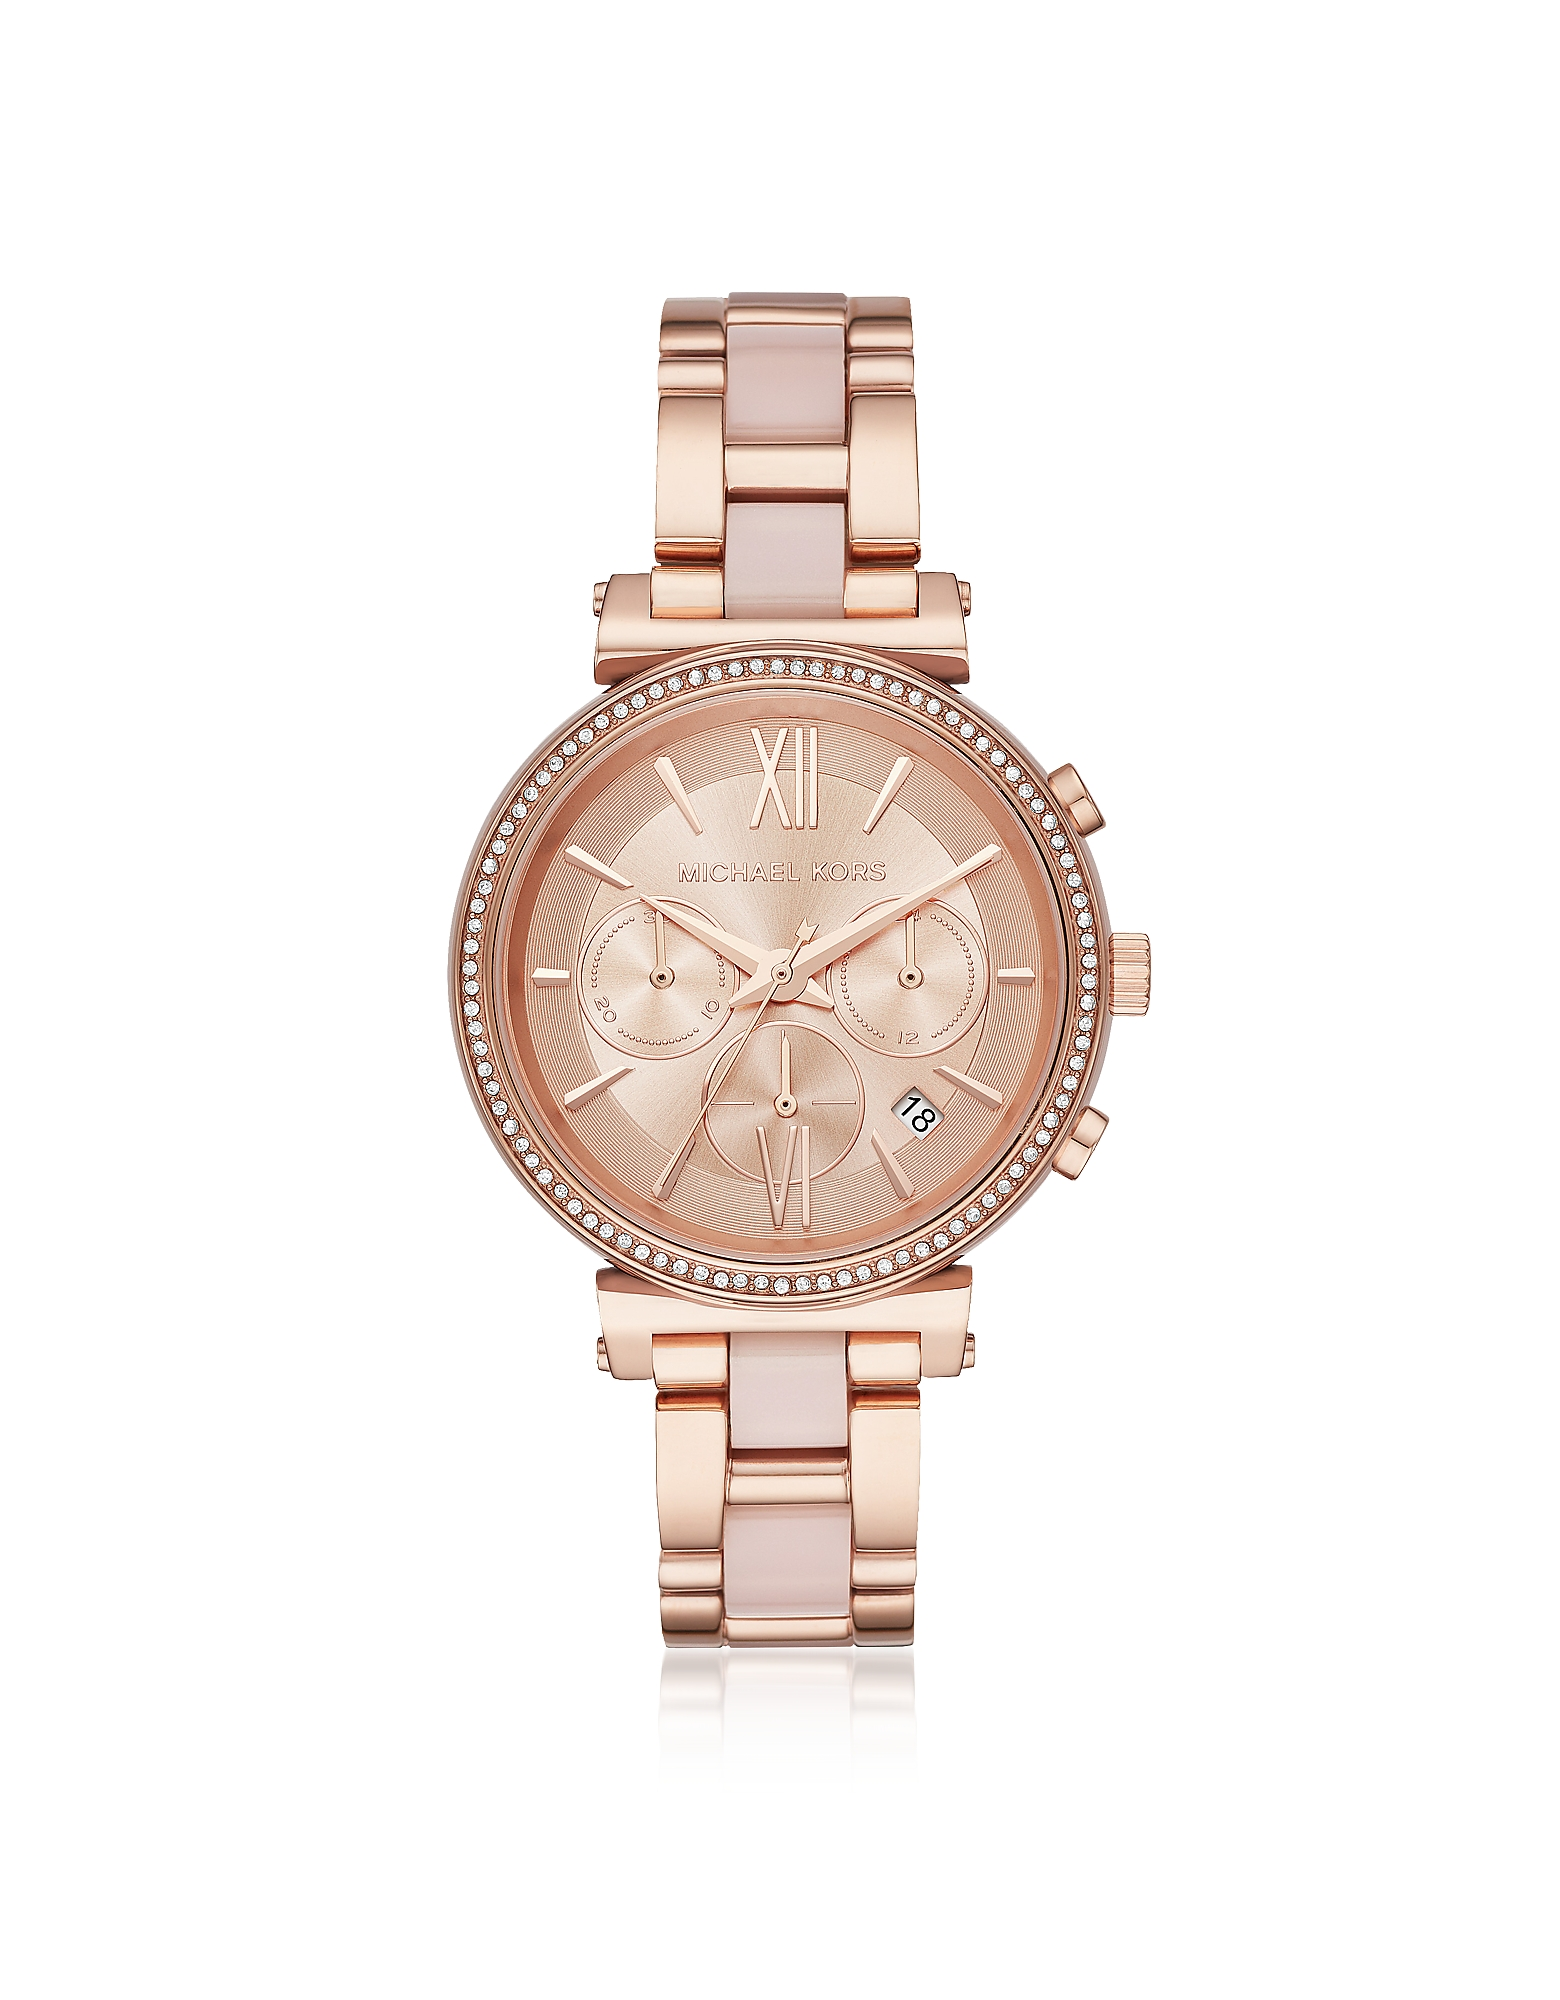 Michael Kors Women's Watches, Sofie Rose Gold-Tone and Acetate Women's Watch